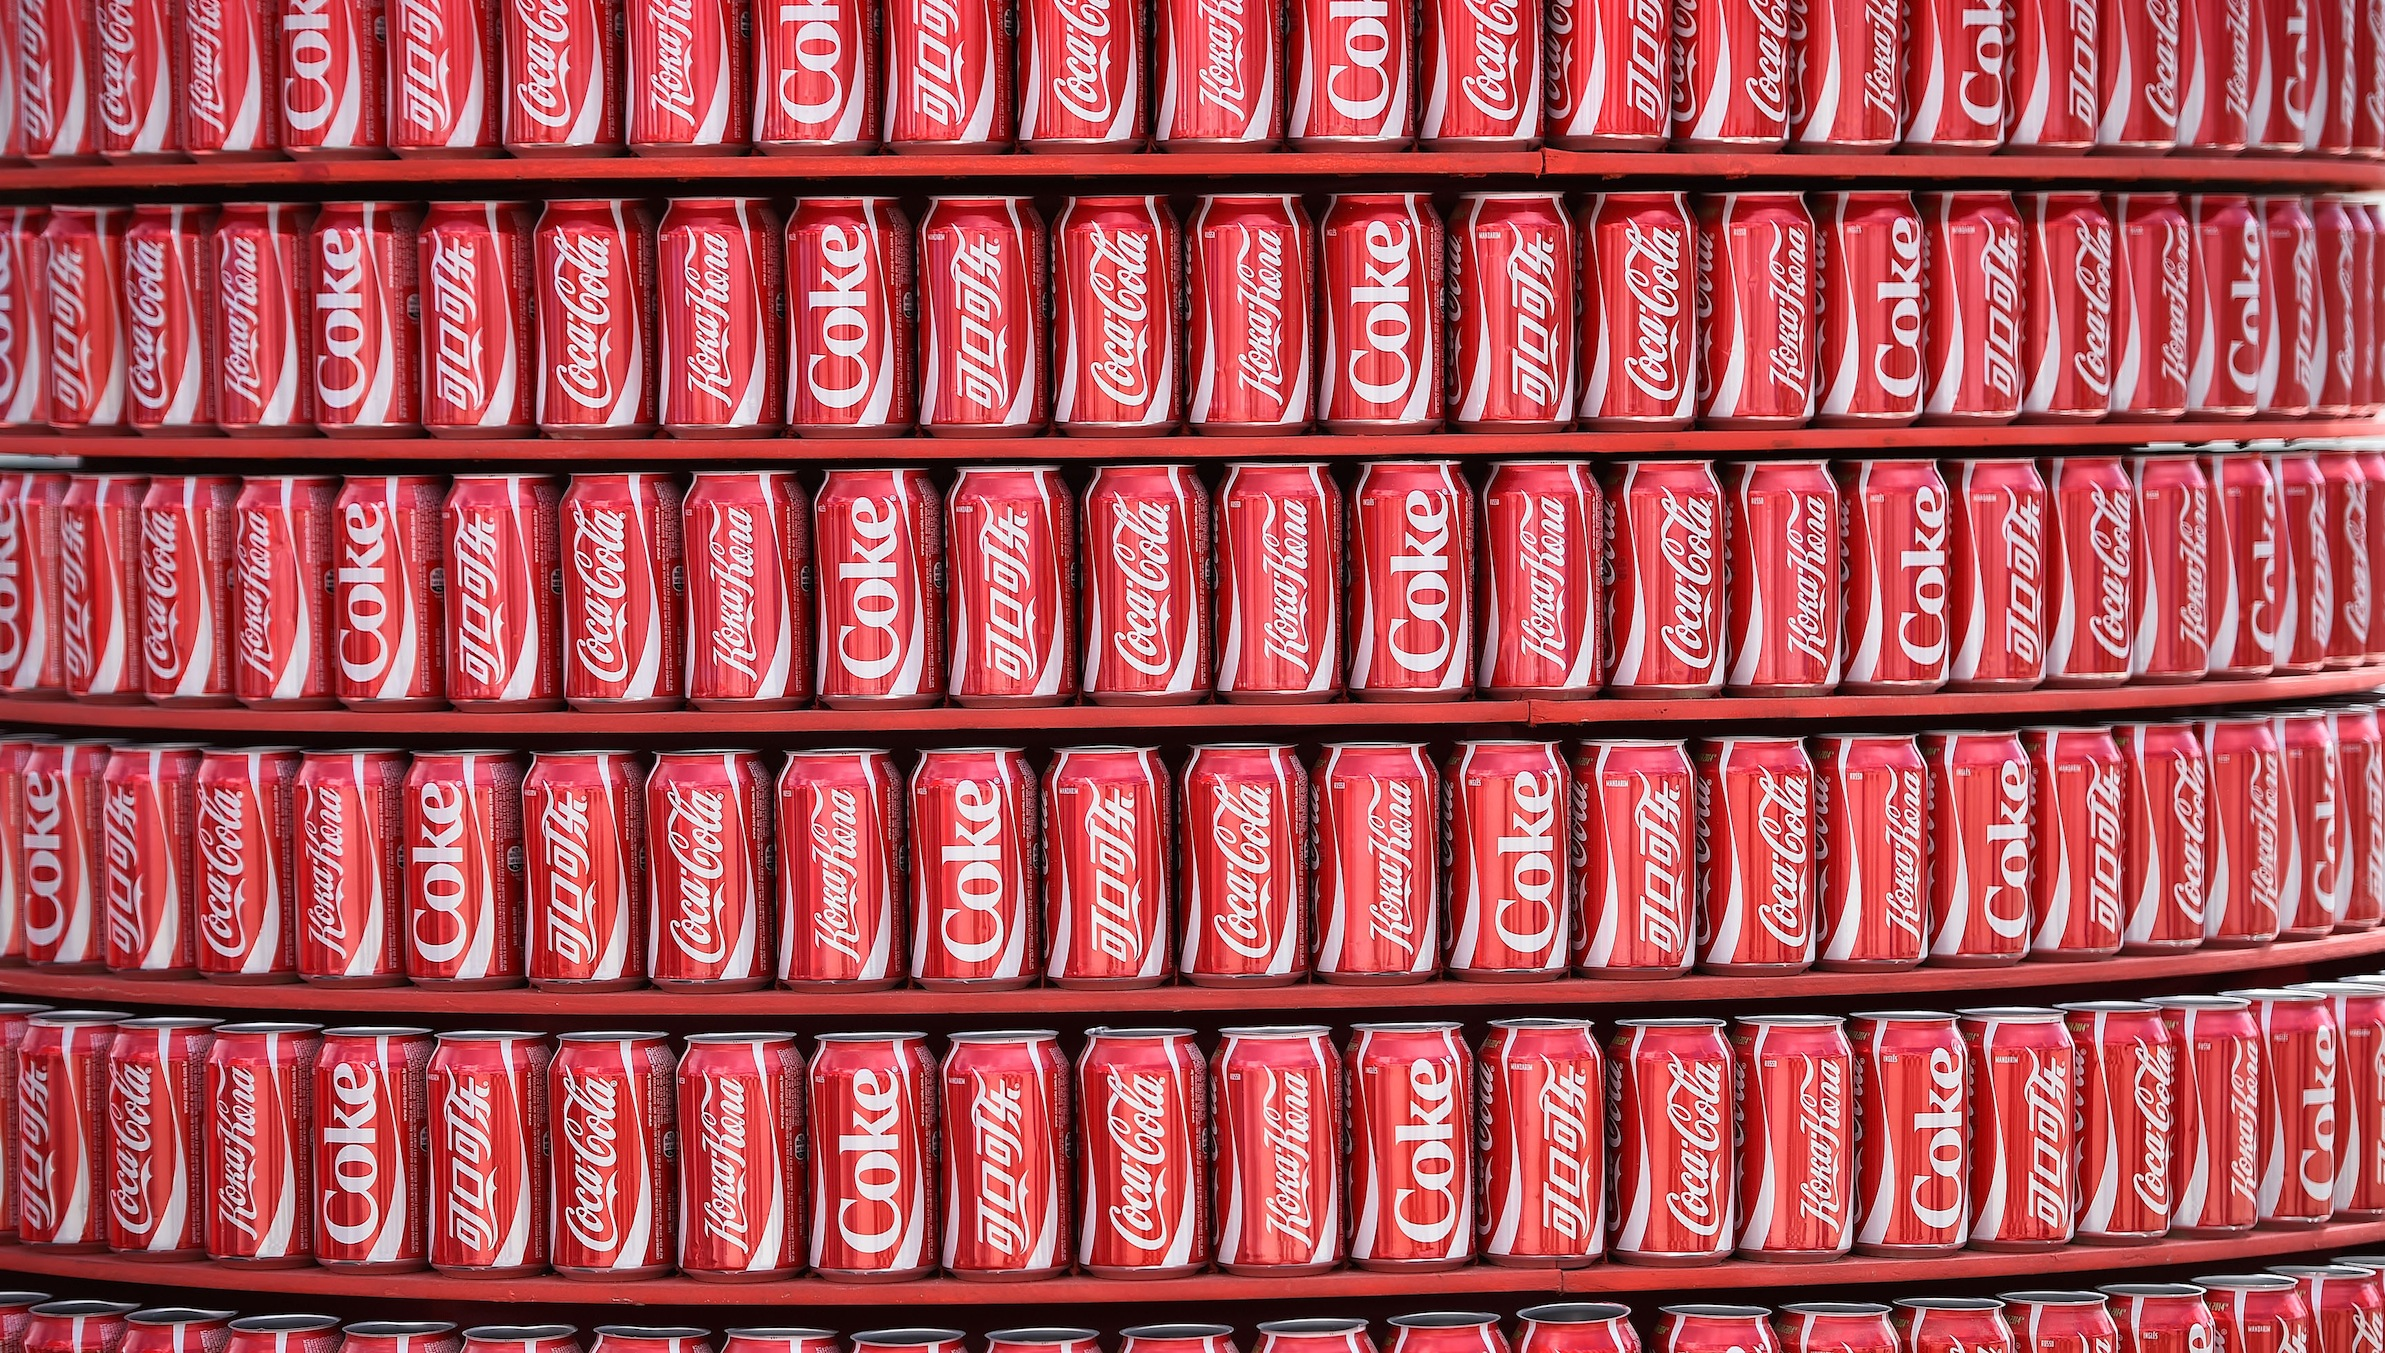 Coca Cola cans are seen at a concession inside the Dunas arena soccer stadium in Natal, June 12 , 2014. Sponsors Adidas , Sony, Visa and Coca-Cola on June 8 called on soccer's rulers to deal thoroughly with allegations of bribery to secure the 2022 World Cup for Qatar, an issue overshadowing this week's kickoff in Brazil.    REUTERS/Dylan Martinez (BRAZIL  - Tags: SOCCER SPORT WORLD CUP BUSINESS)   - RTR3TFZ3